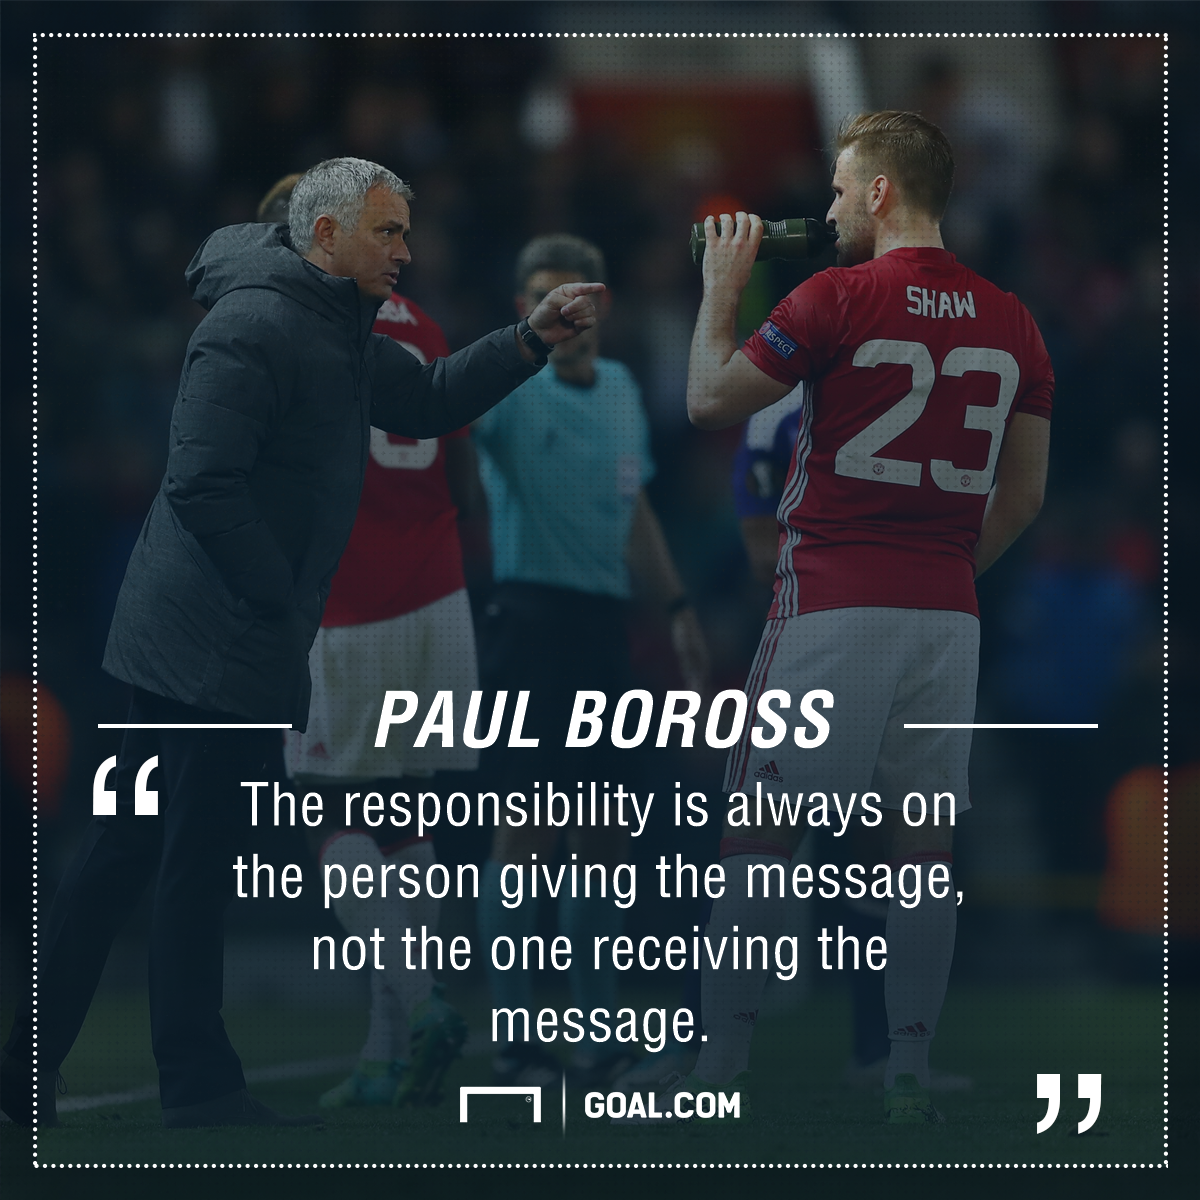 Paul Boross quote